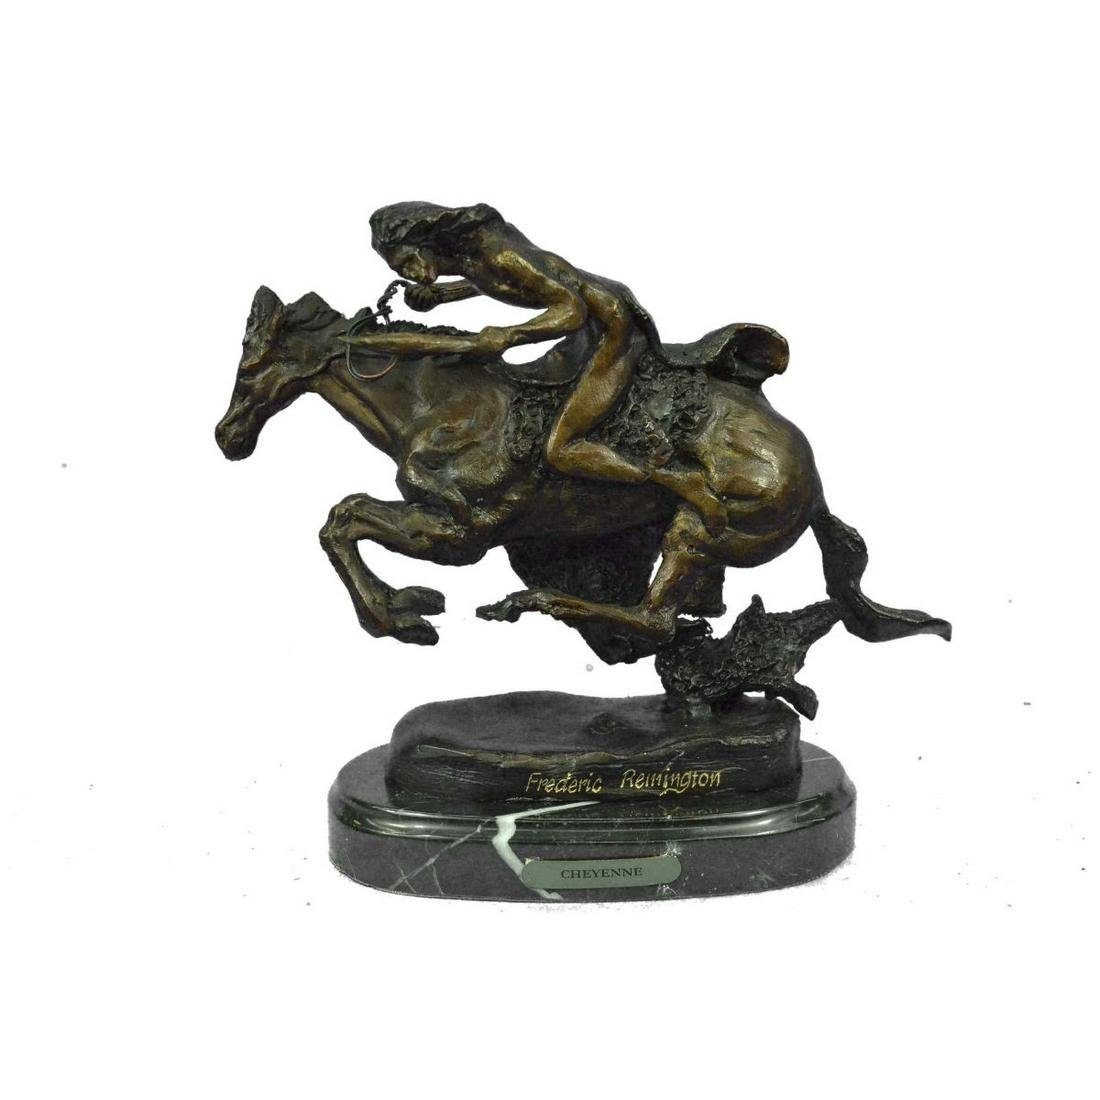 CHEYENNE by Frederic Remington Bronze Sculpture of